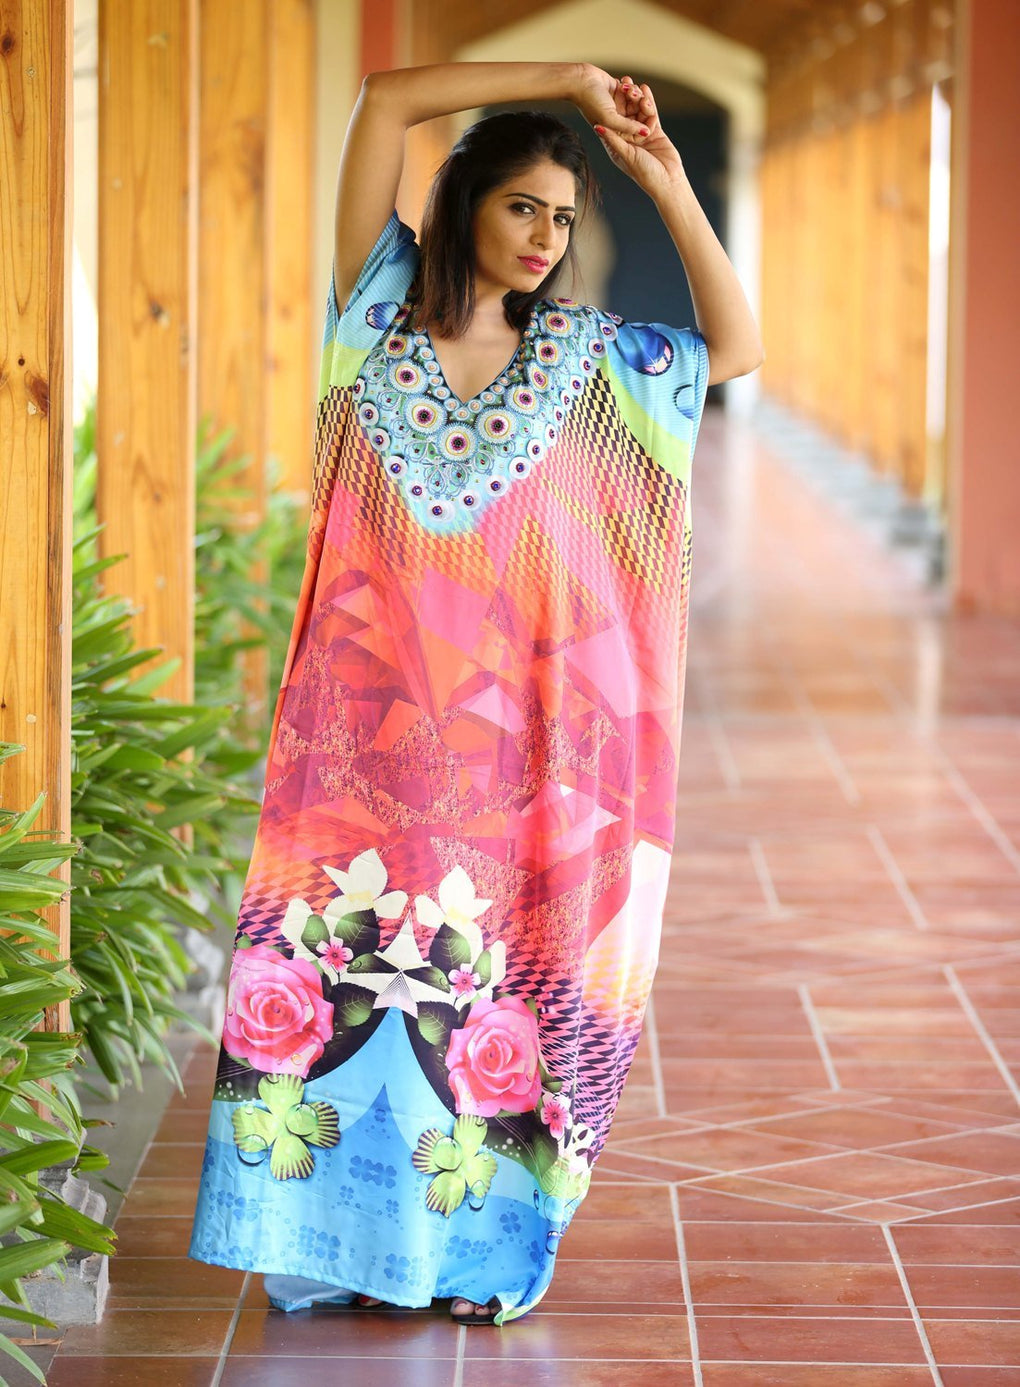 Beautiful one piece jewelled full length resort wear beach coverup kaftan dress silk looks and feel kaftan evening maxi gown 94 - Silk kaftan